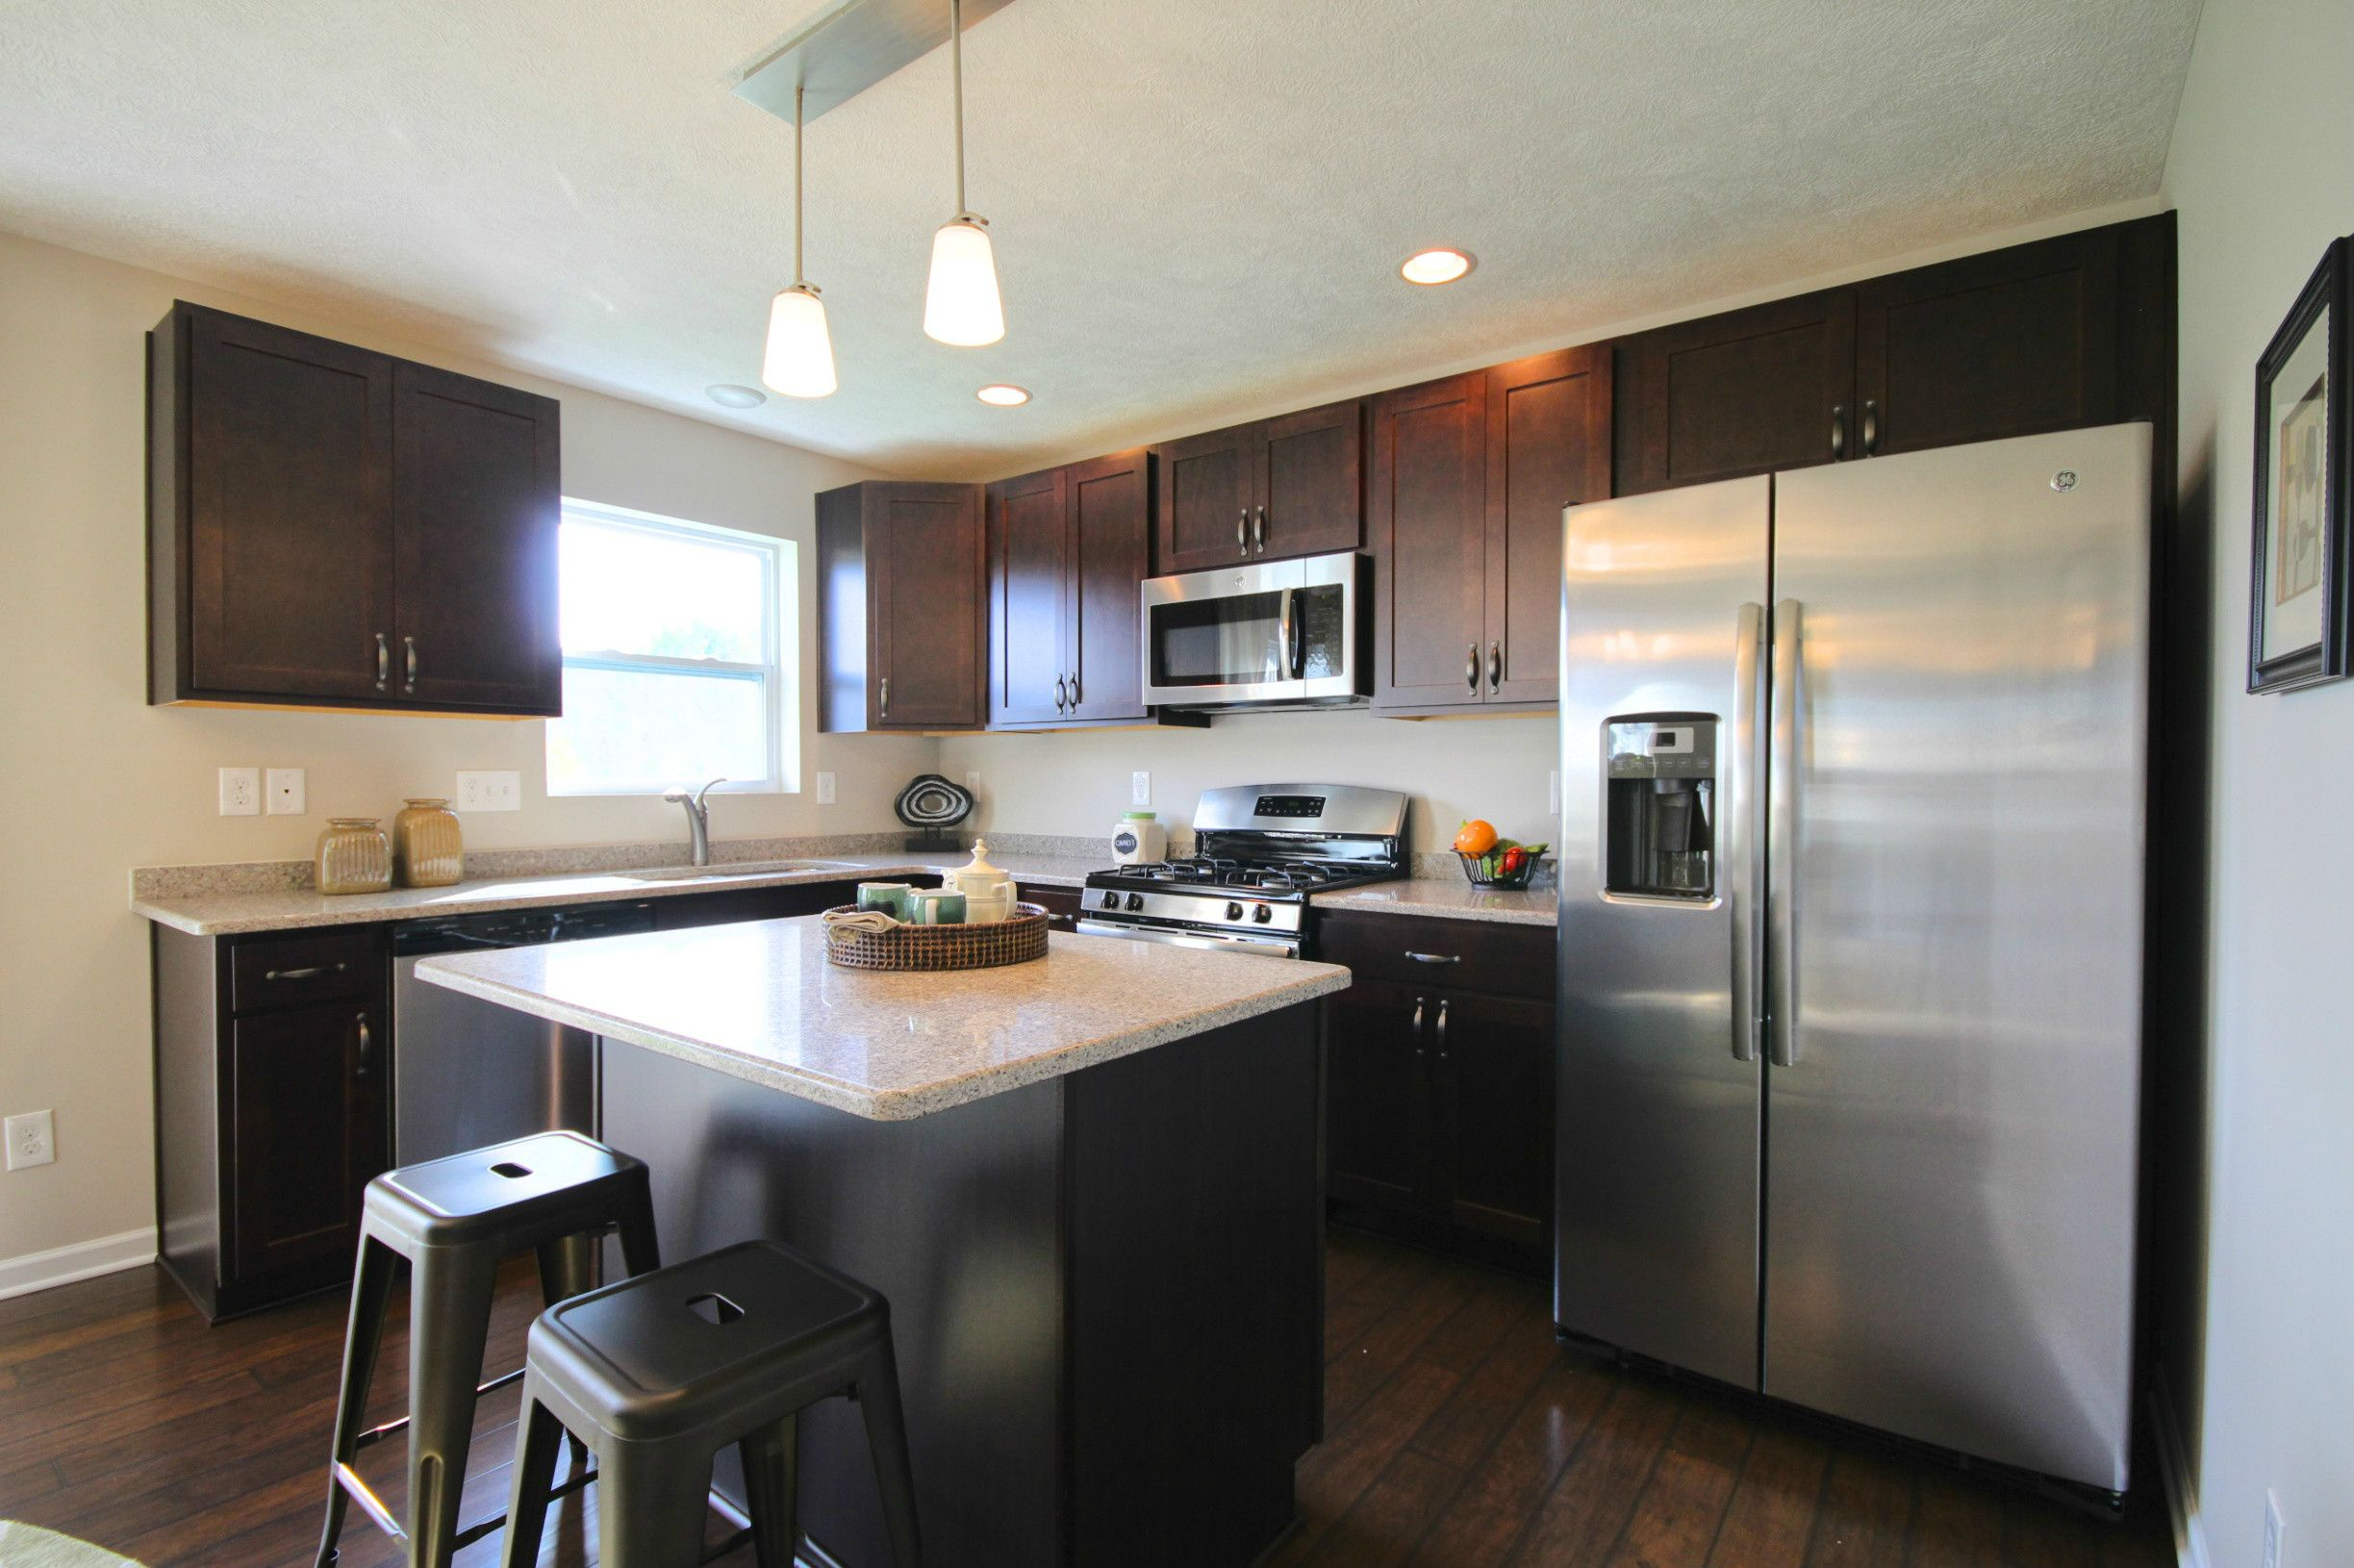 Kitchen featured in the Northwood By Mayberry Homes in Flint, MI